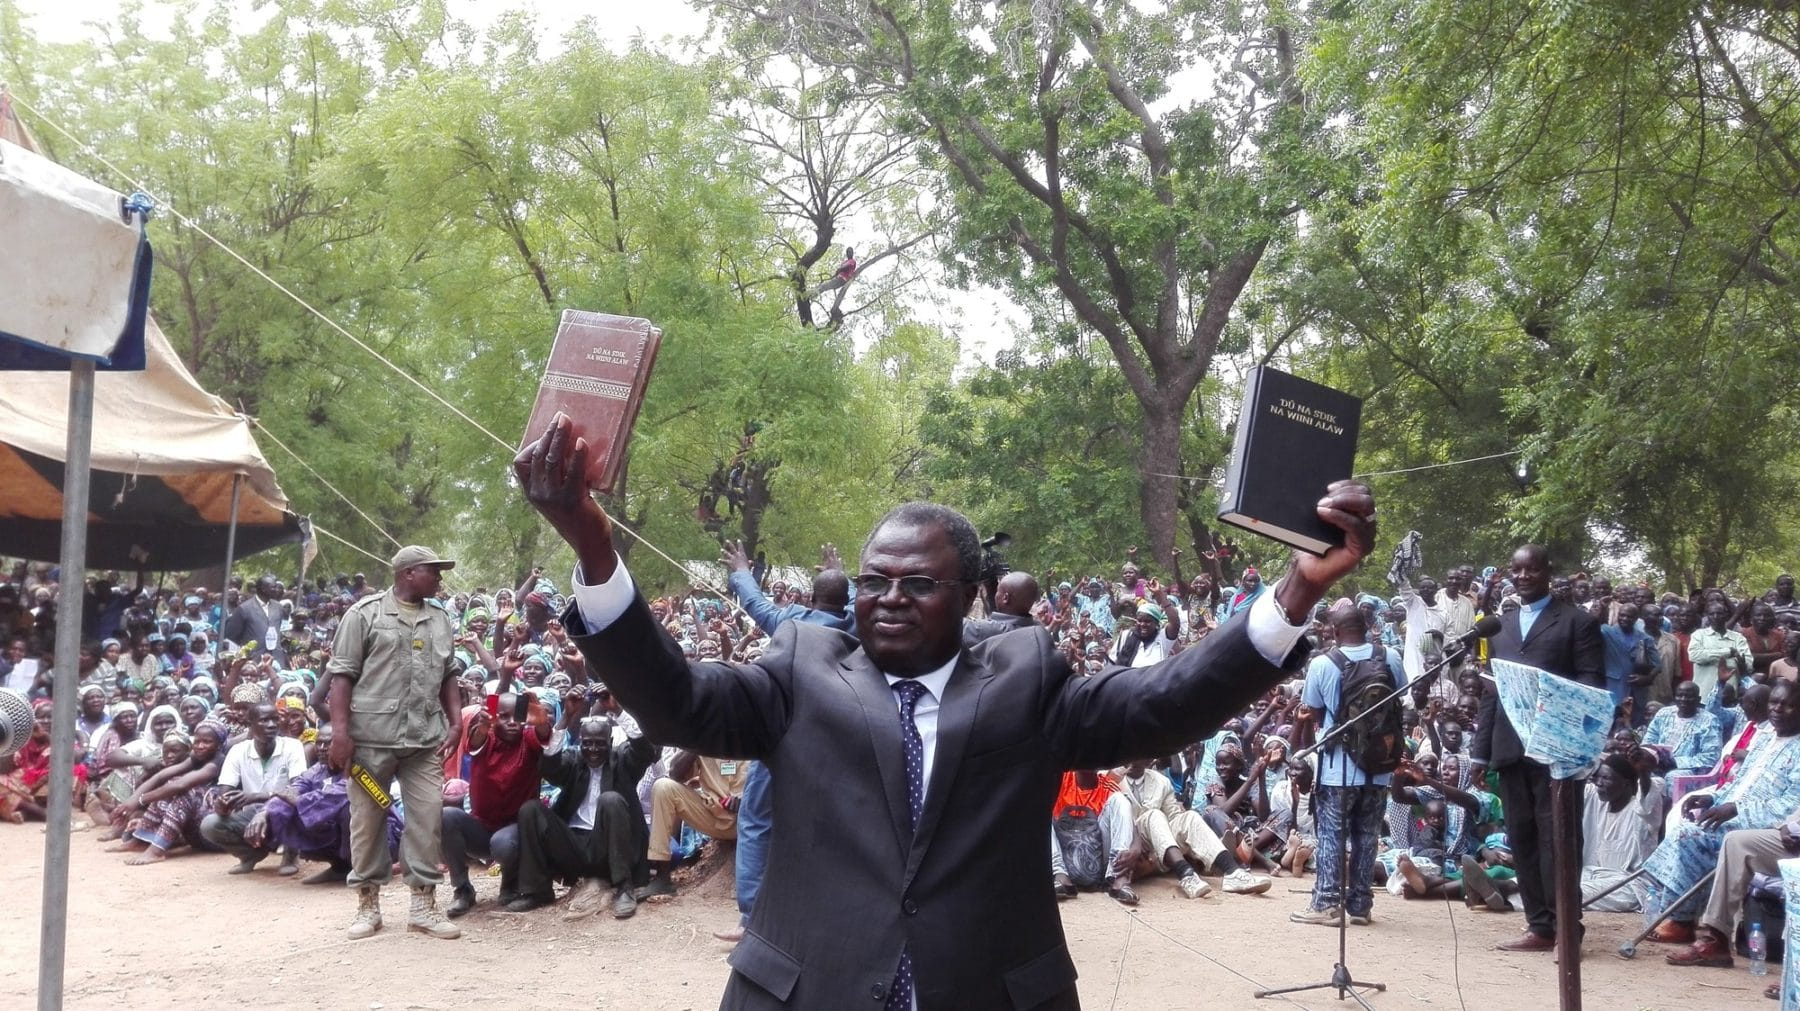 """Here is your Bible!"" Bible Society of Cameroon General Secretary Luc Gnowa said to the 5,000 Musgum Christians gathered at the launch of the very first Musgum Bible in the town of Pouss in Cameroon, on May 28, 2016."